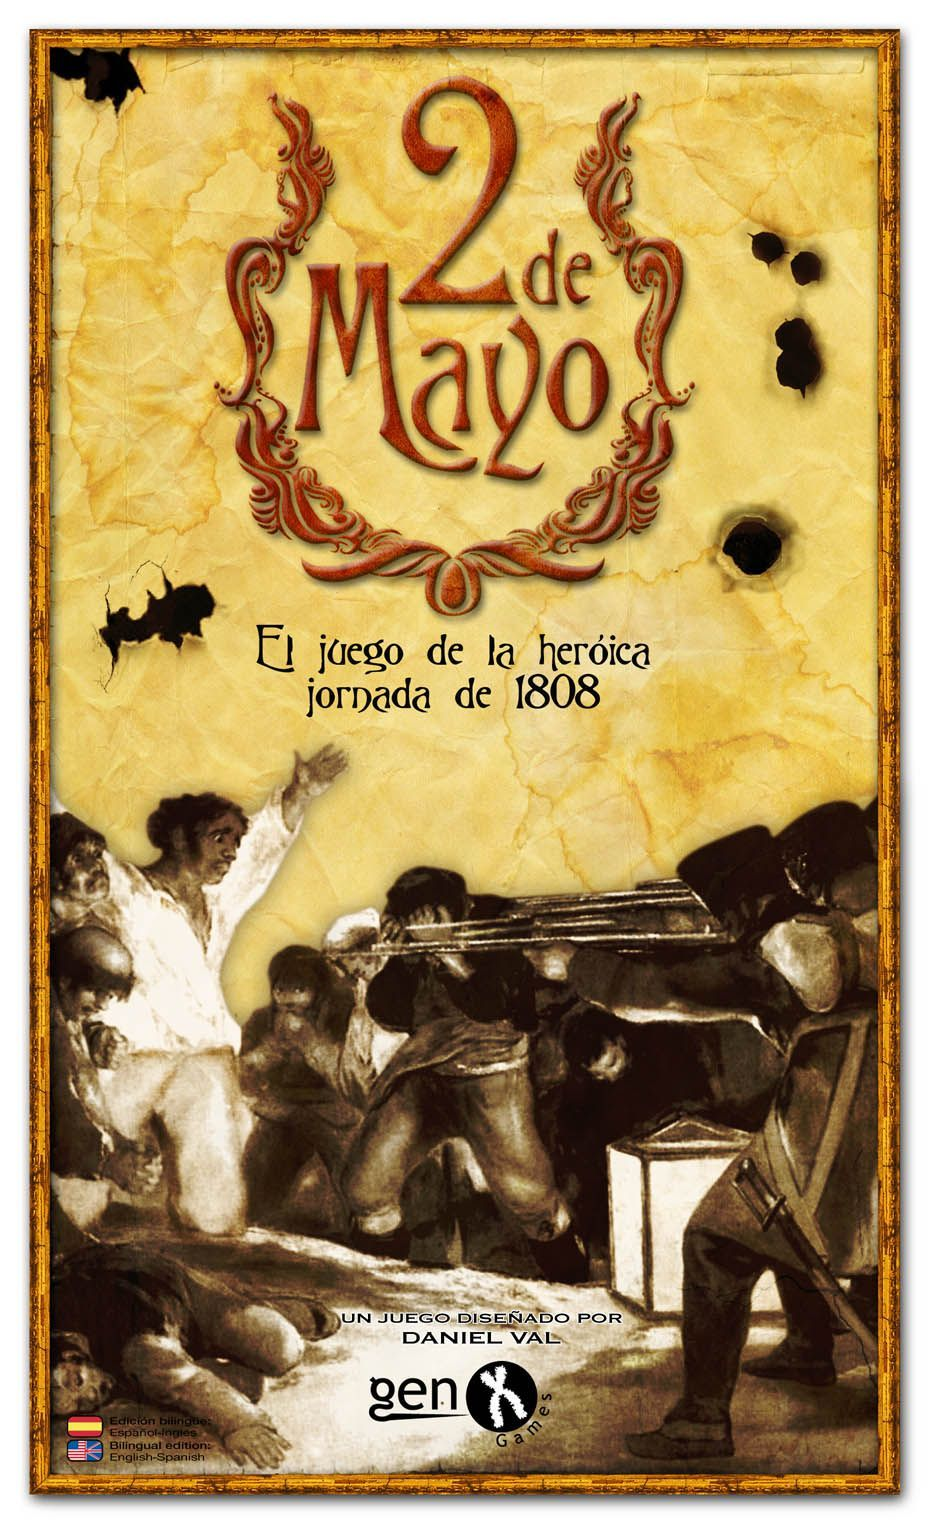 Main image for 2 de Mayo board game